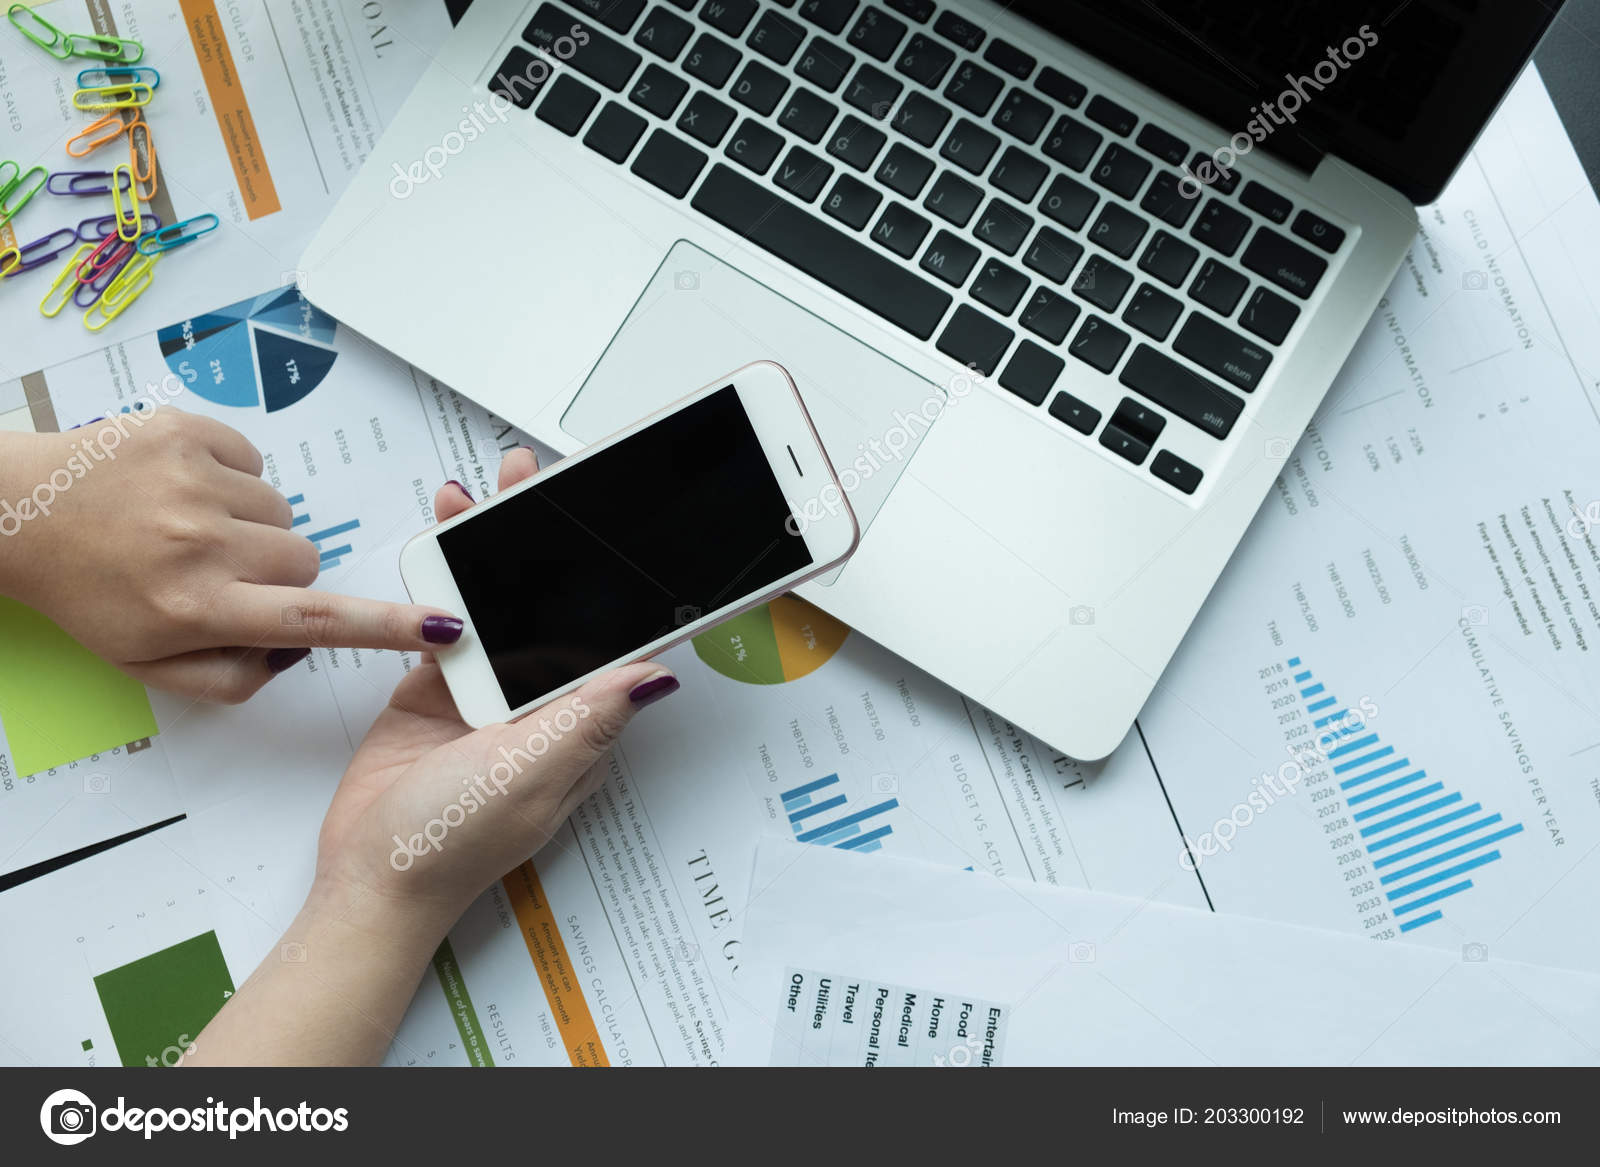 Top Business Laptops 2020.Top View Business Woman Using Smartphone Financial Document